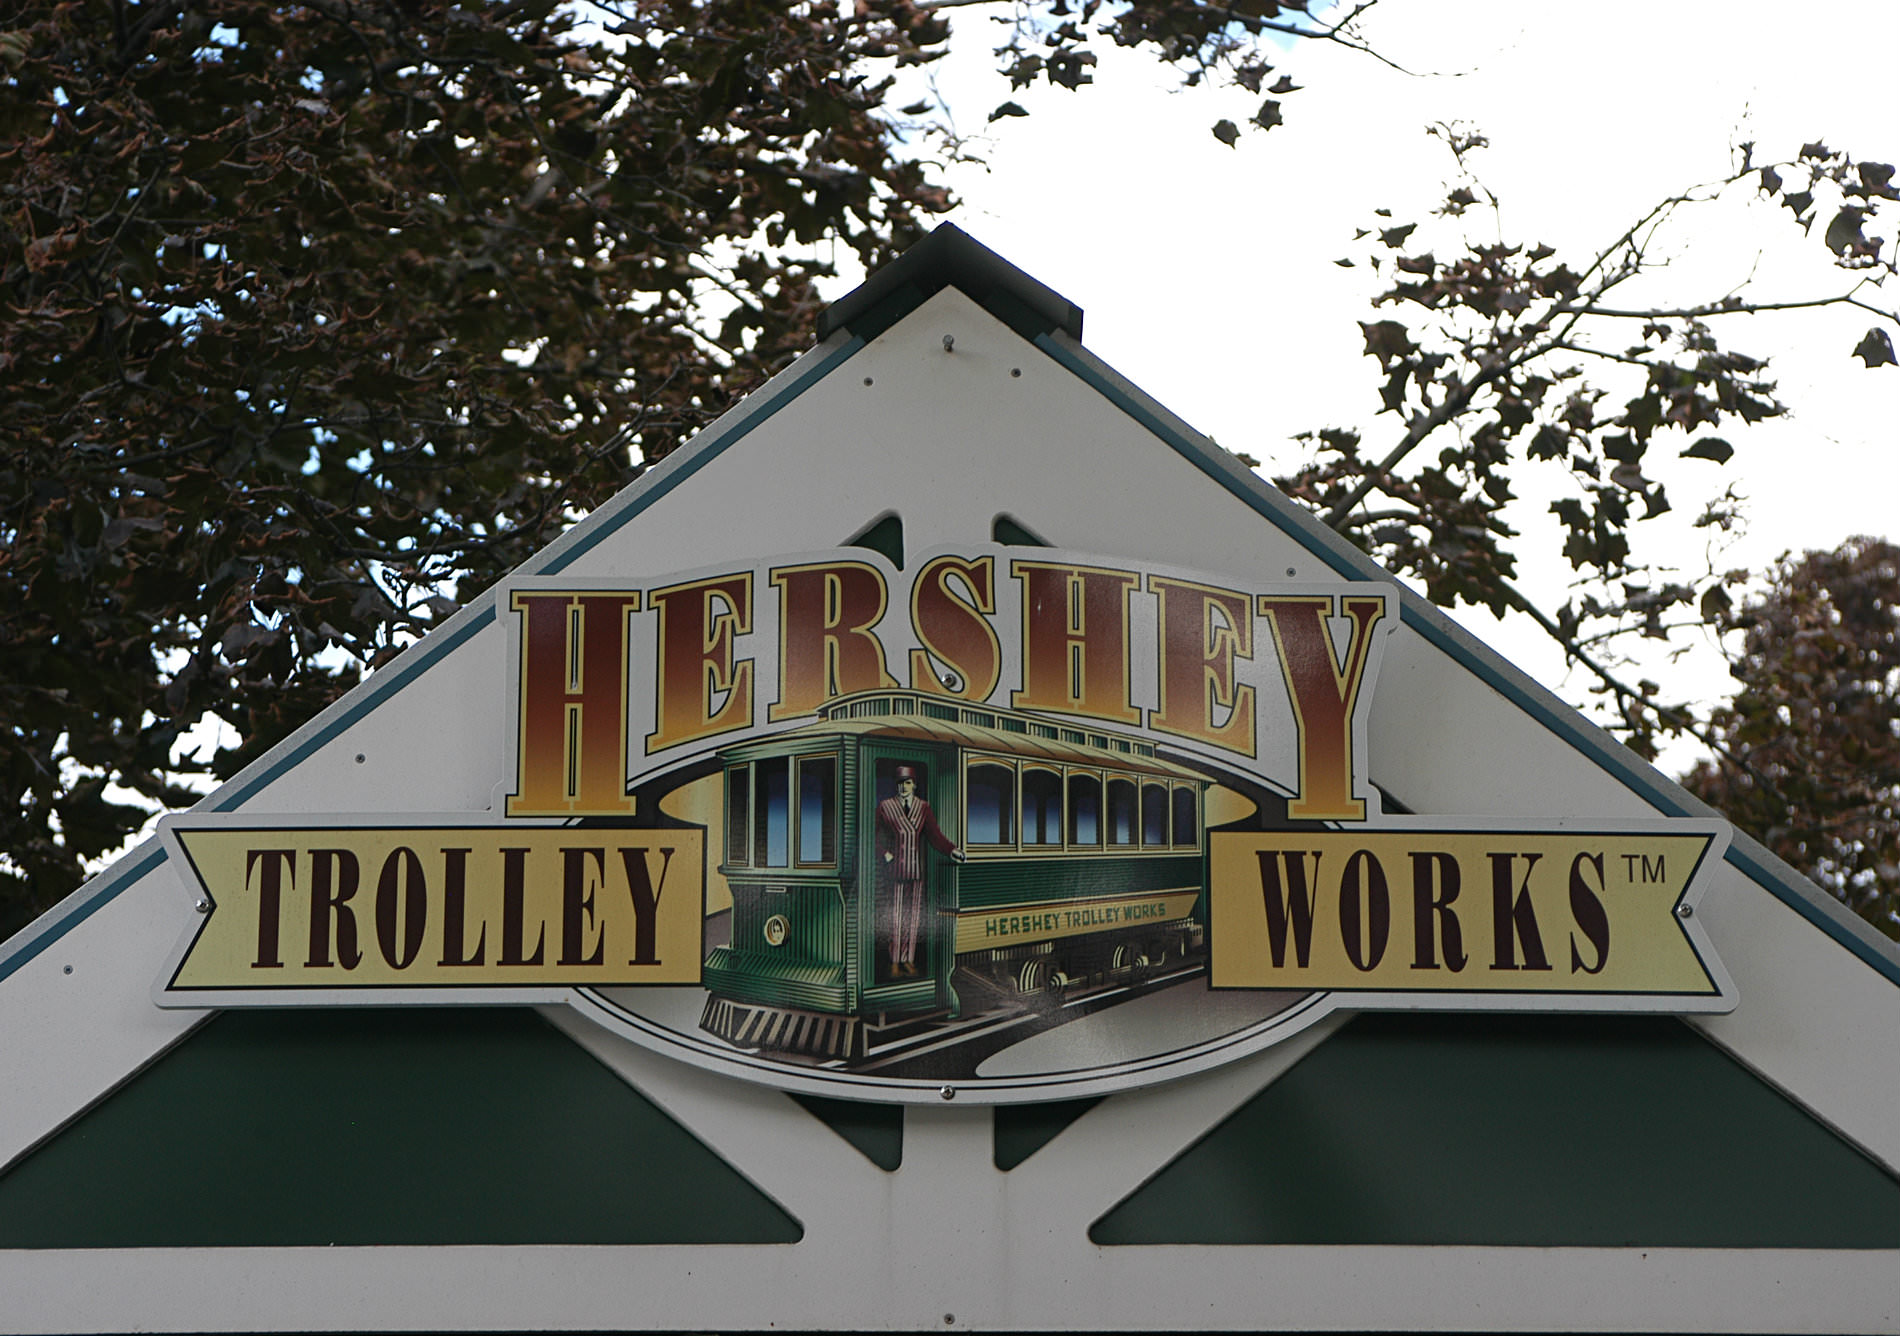 Picture of Trolley works.